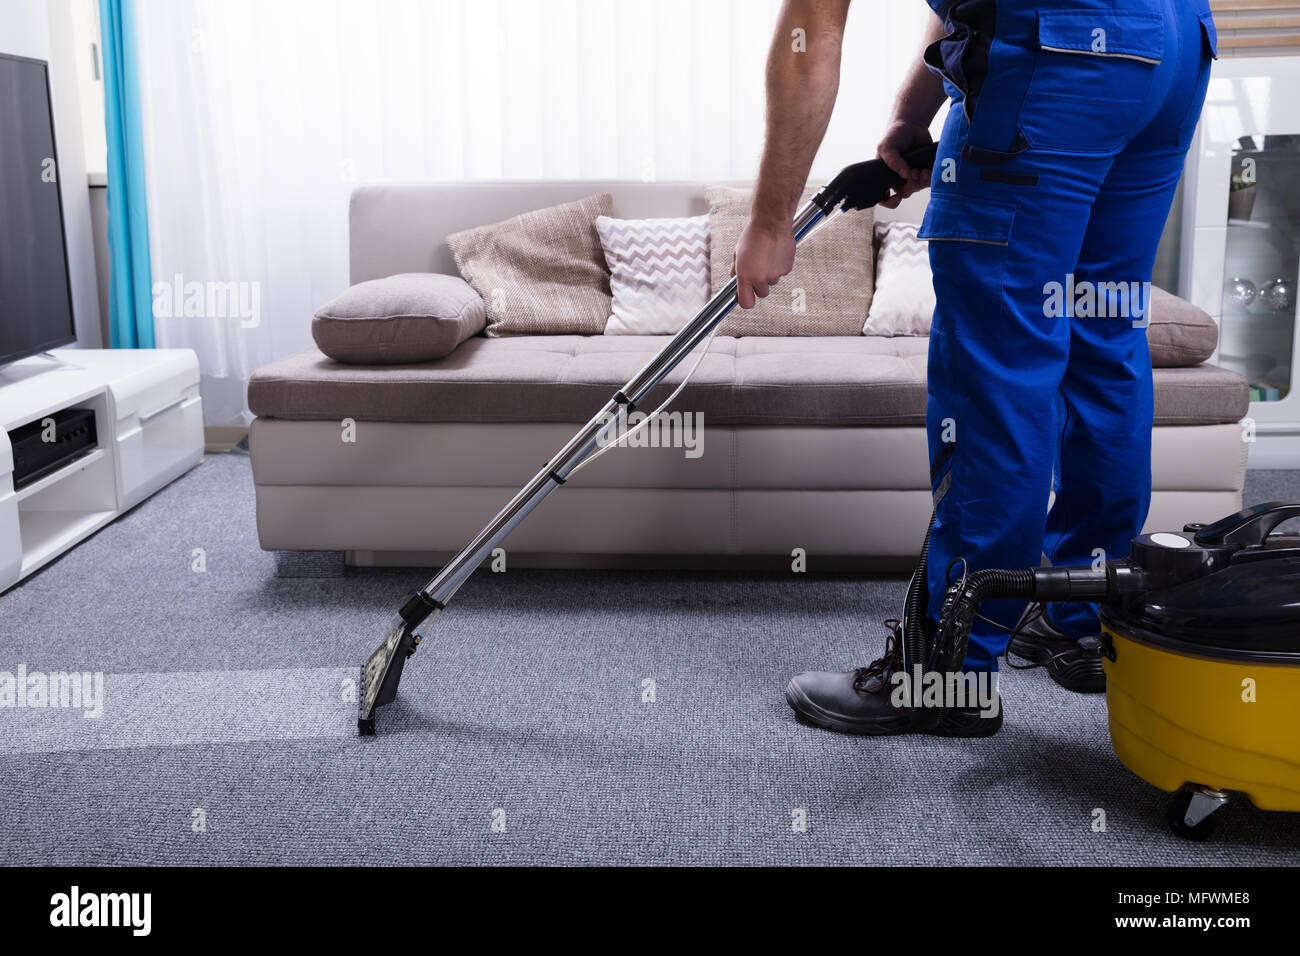 Janitor's Hand Cleaning Carpet With Vacuum Cleaner - Stock Image